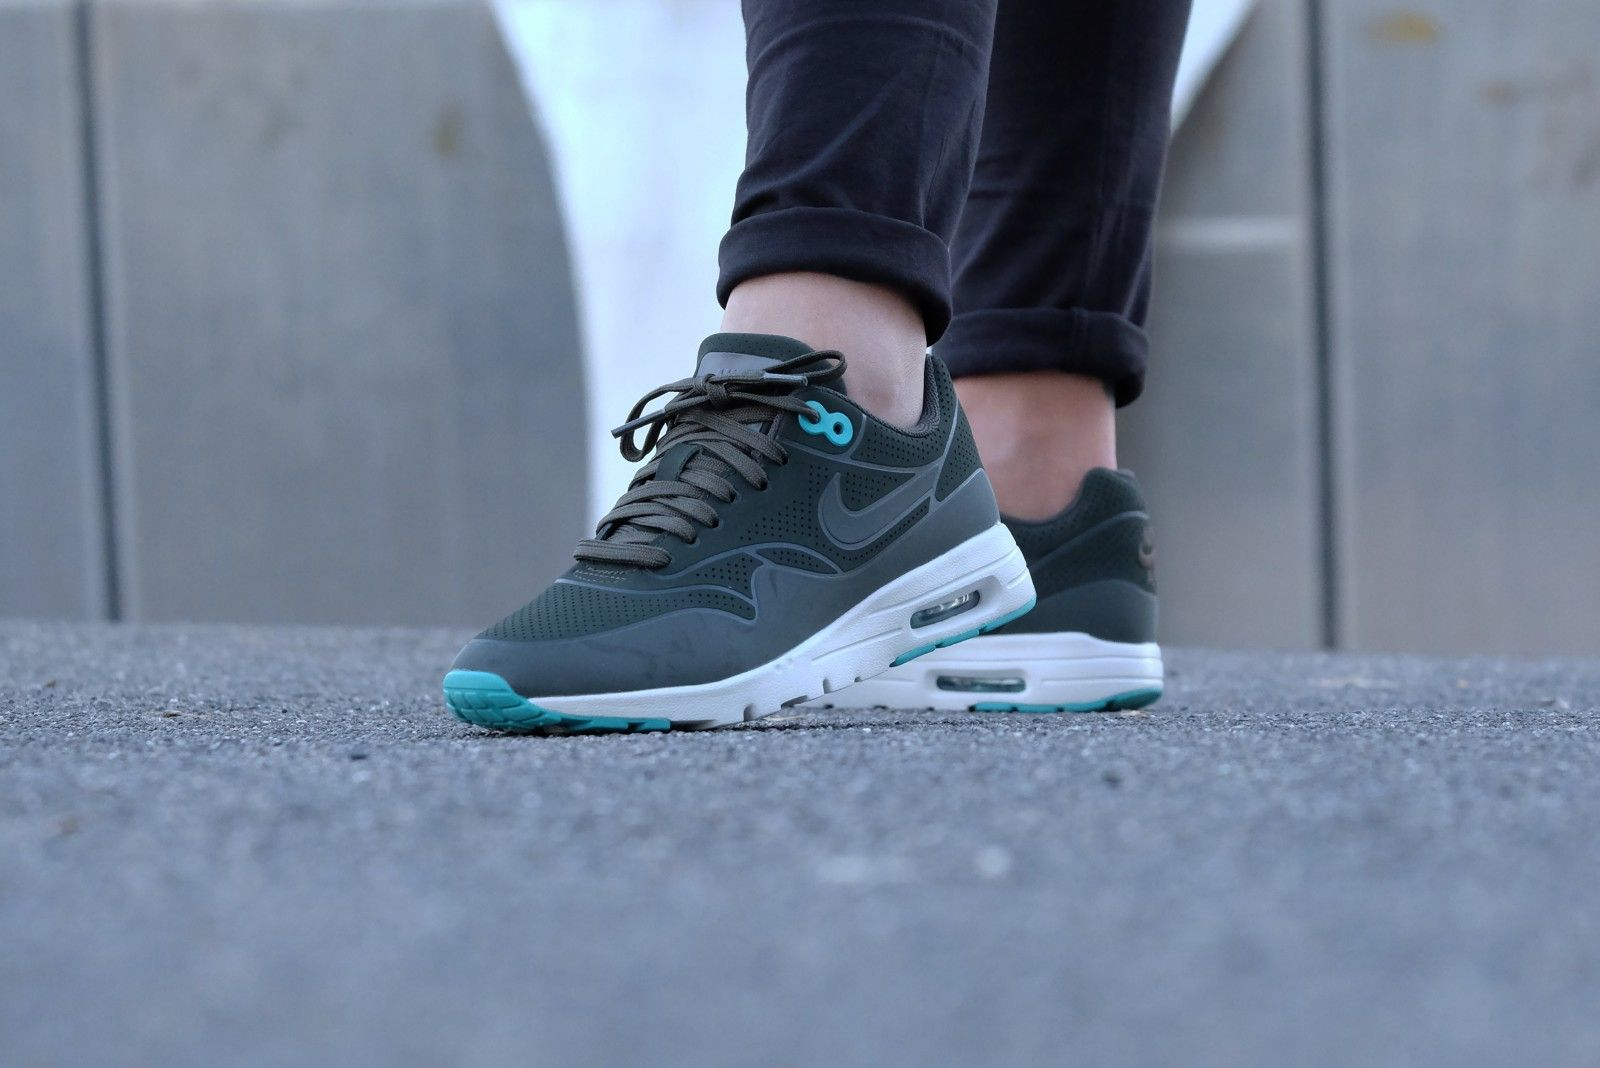 Nike Air Max 1 Ultra Moire Sequoia-Washed Teal - 704995-304 ...